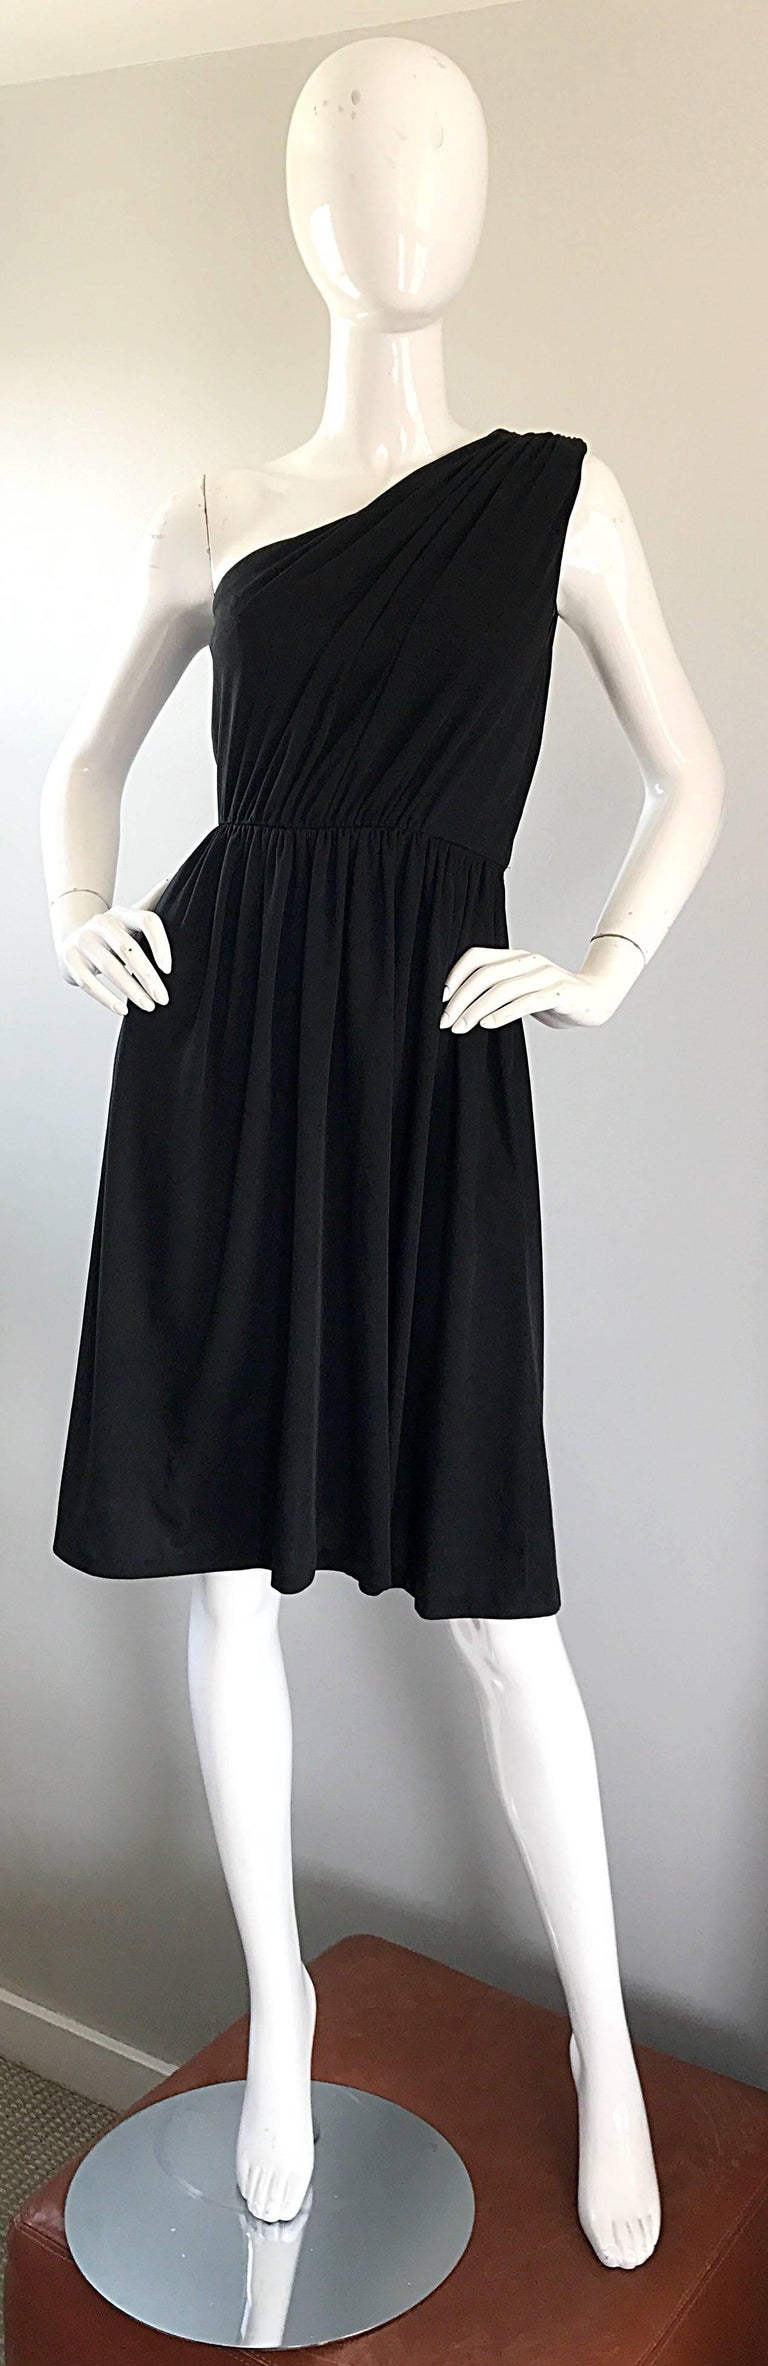 1970s Anthony Muto for Joseph Magnin Black Jersey One Shoulder 70s Grecian Dress For Sale 5